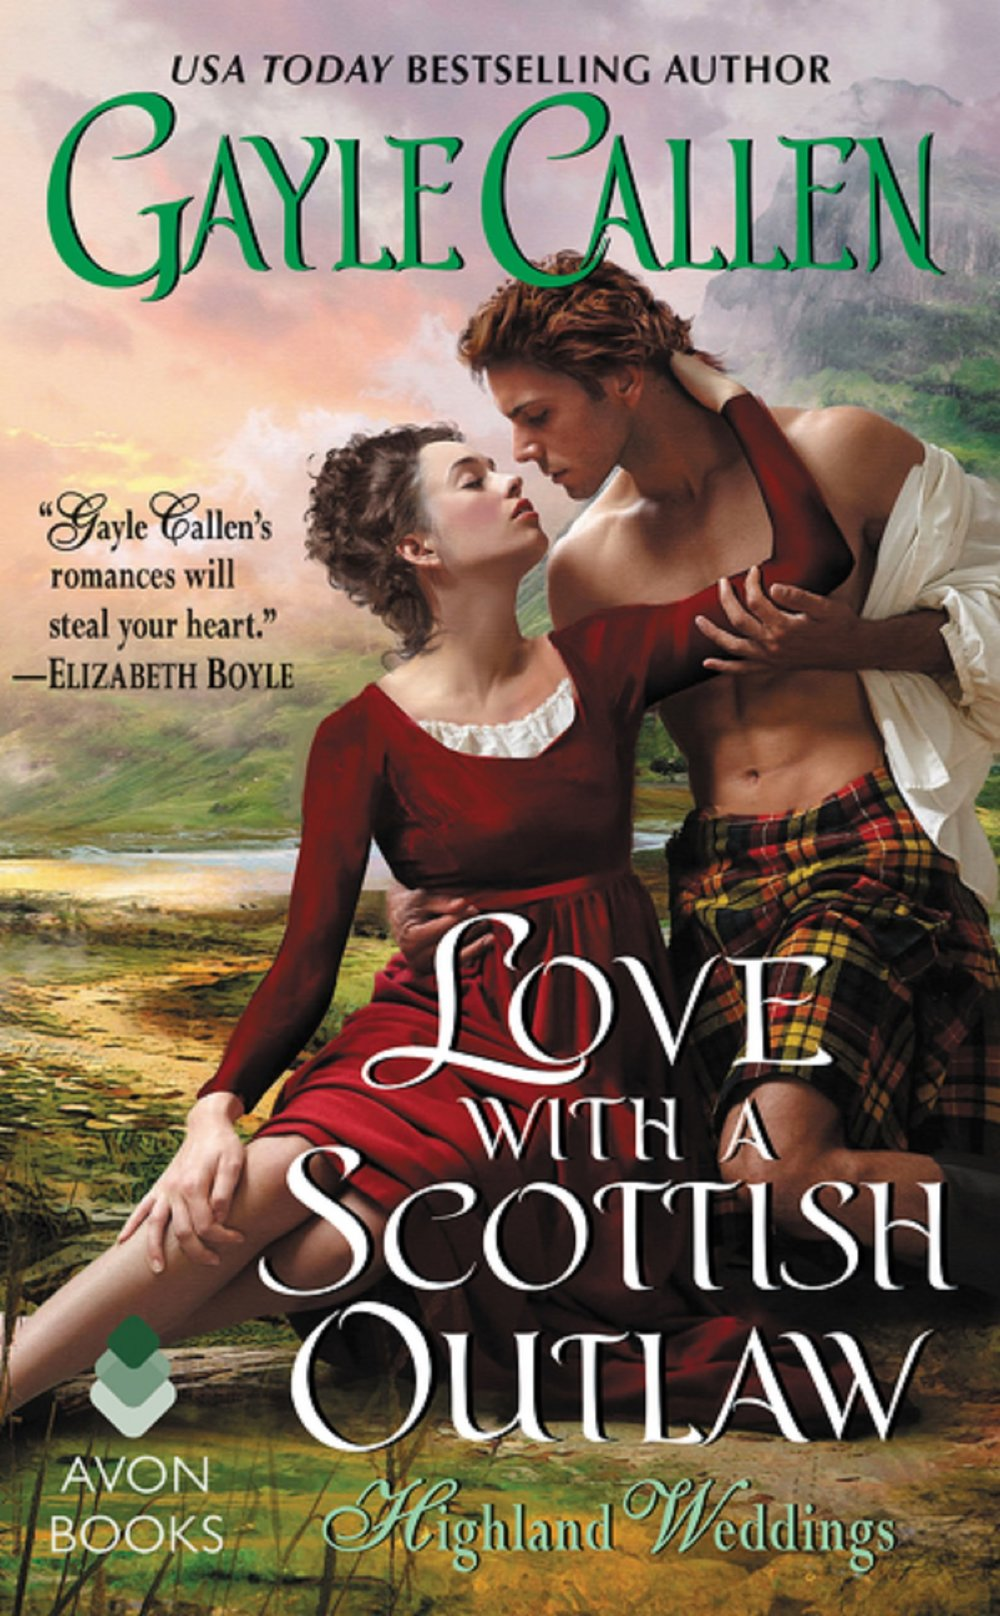 love with scottish outlaw.jpg